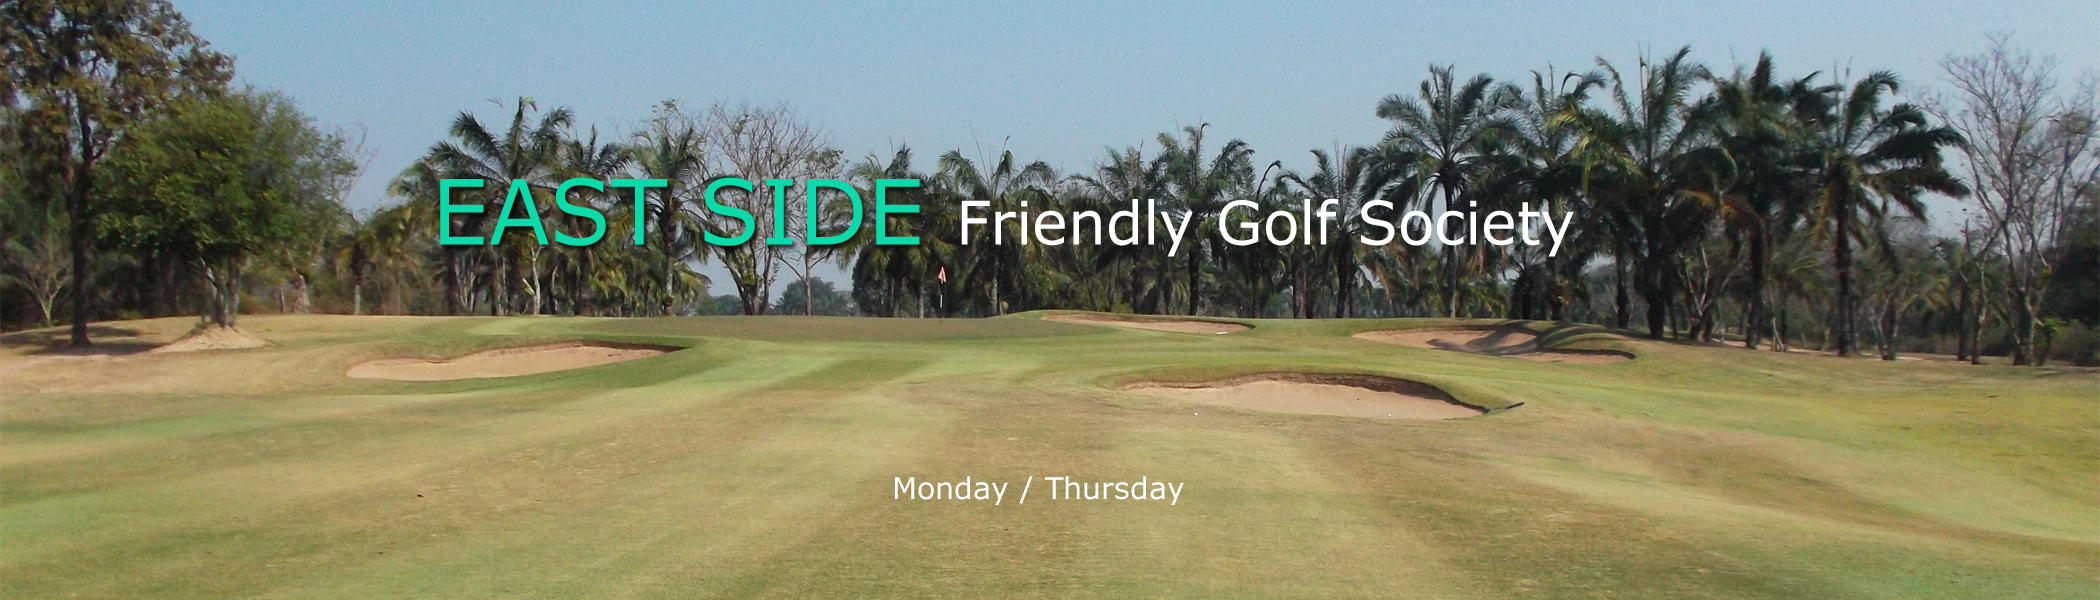 EAST SIDE Friendly Golf Society